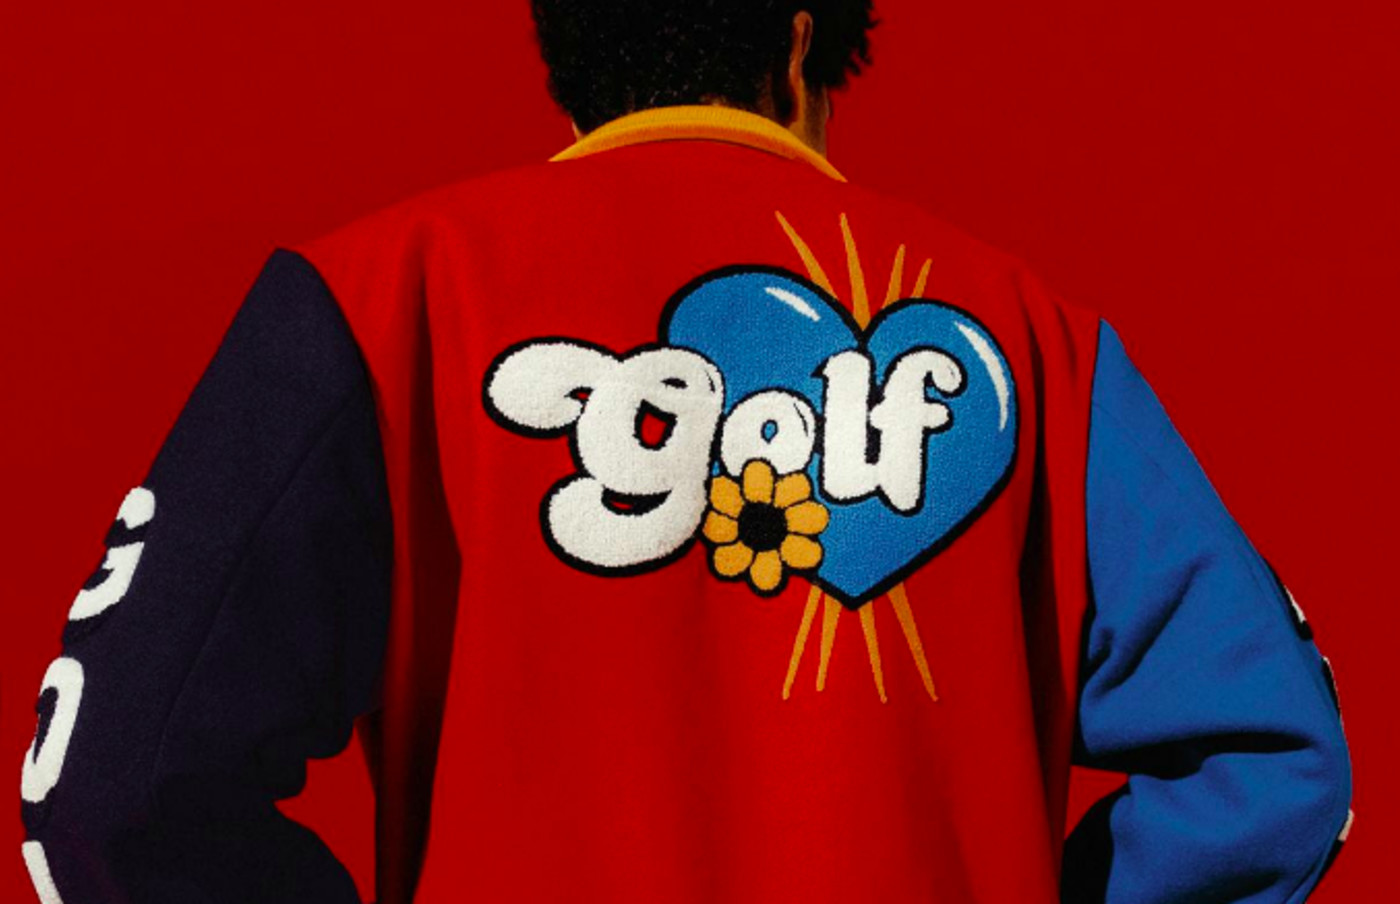 GOLF WINTER 2019 COLLECTION